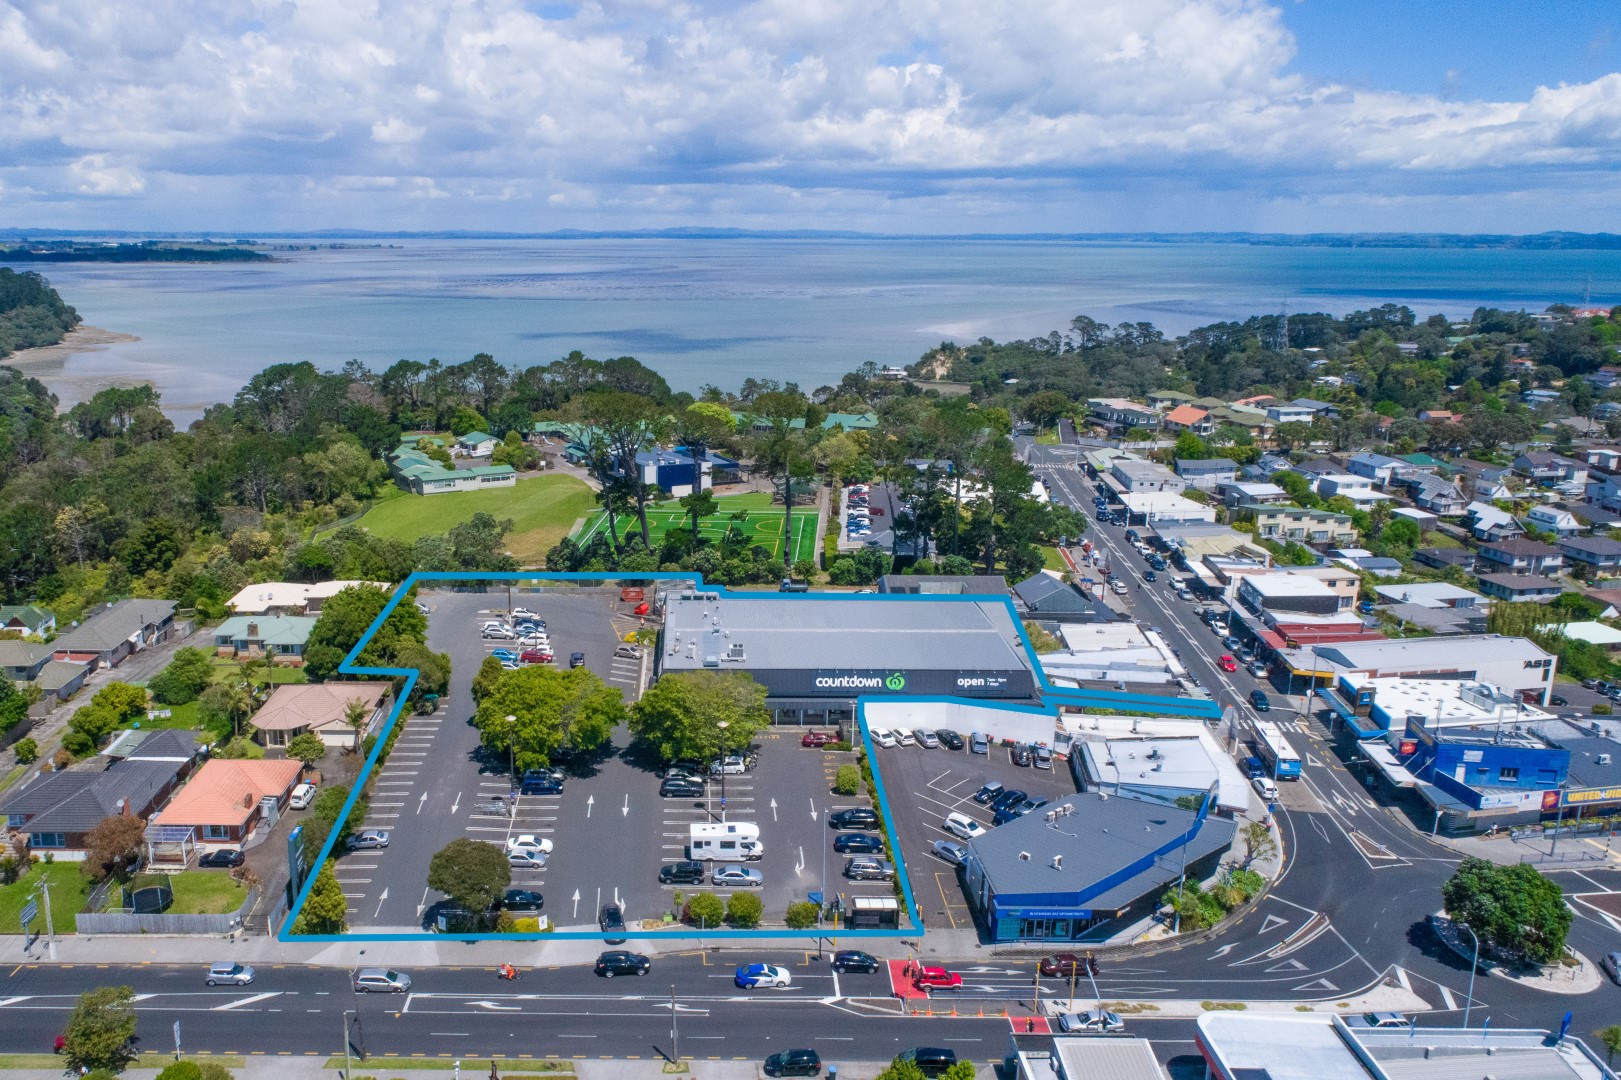 Commercial Property Sales | Page 2 | interest.co.nz